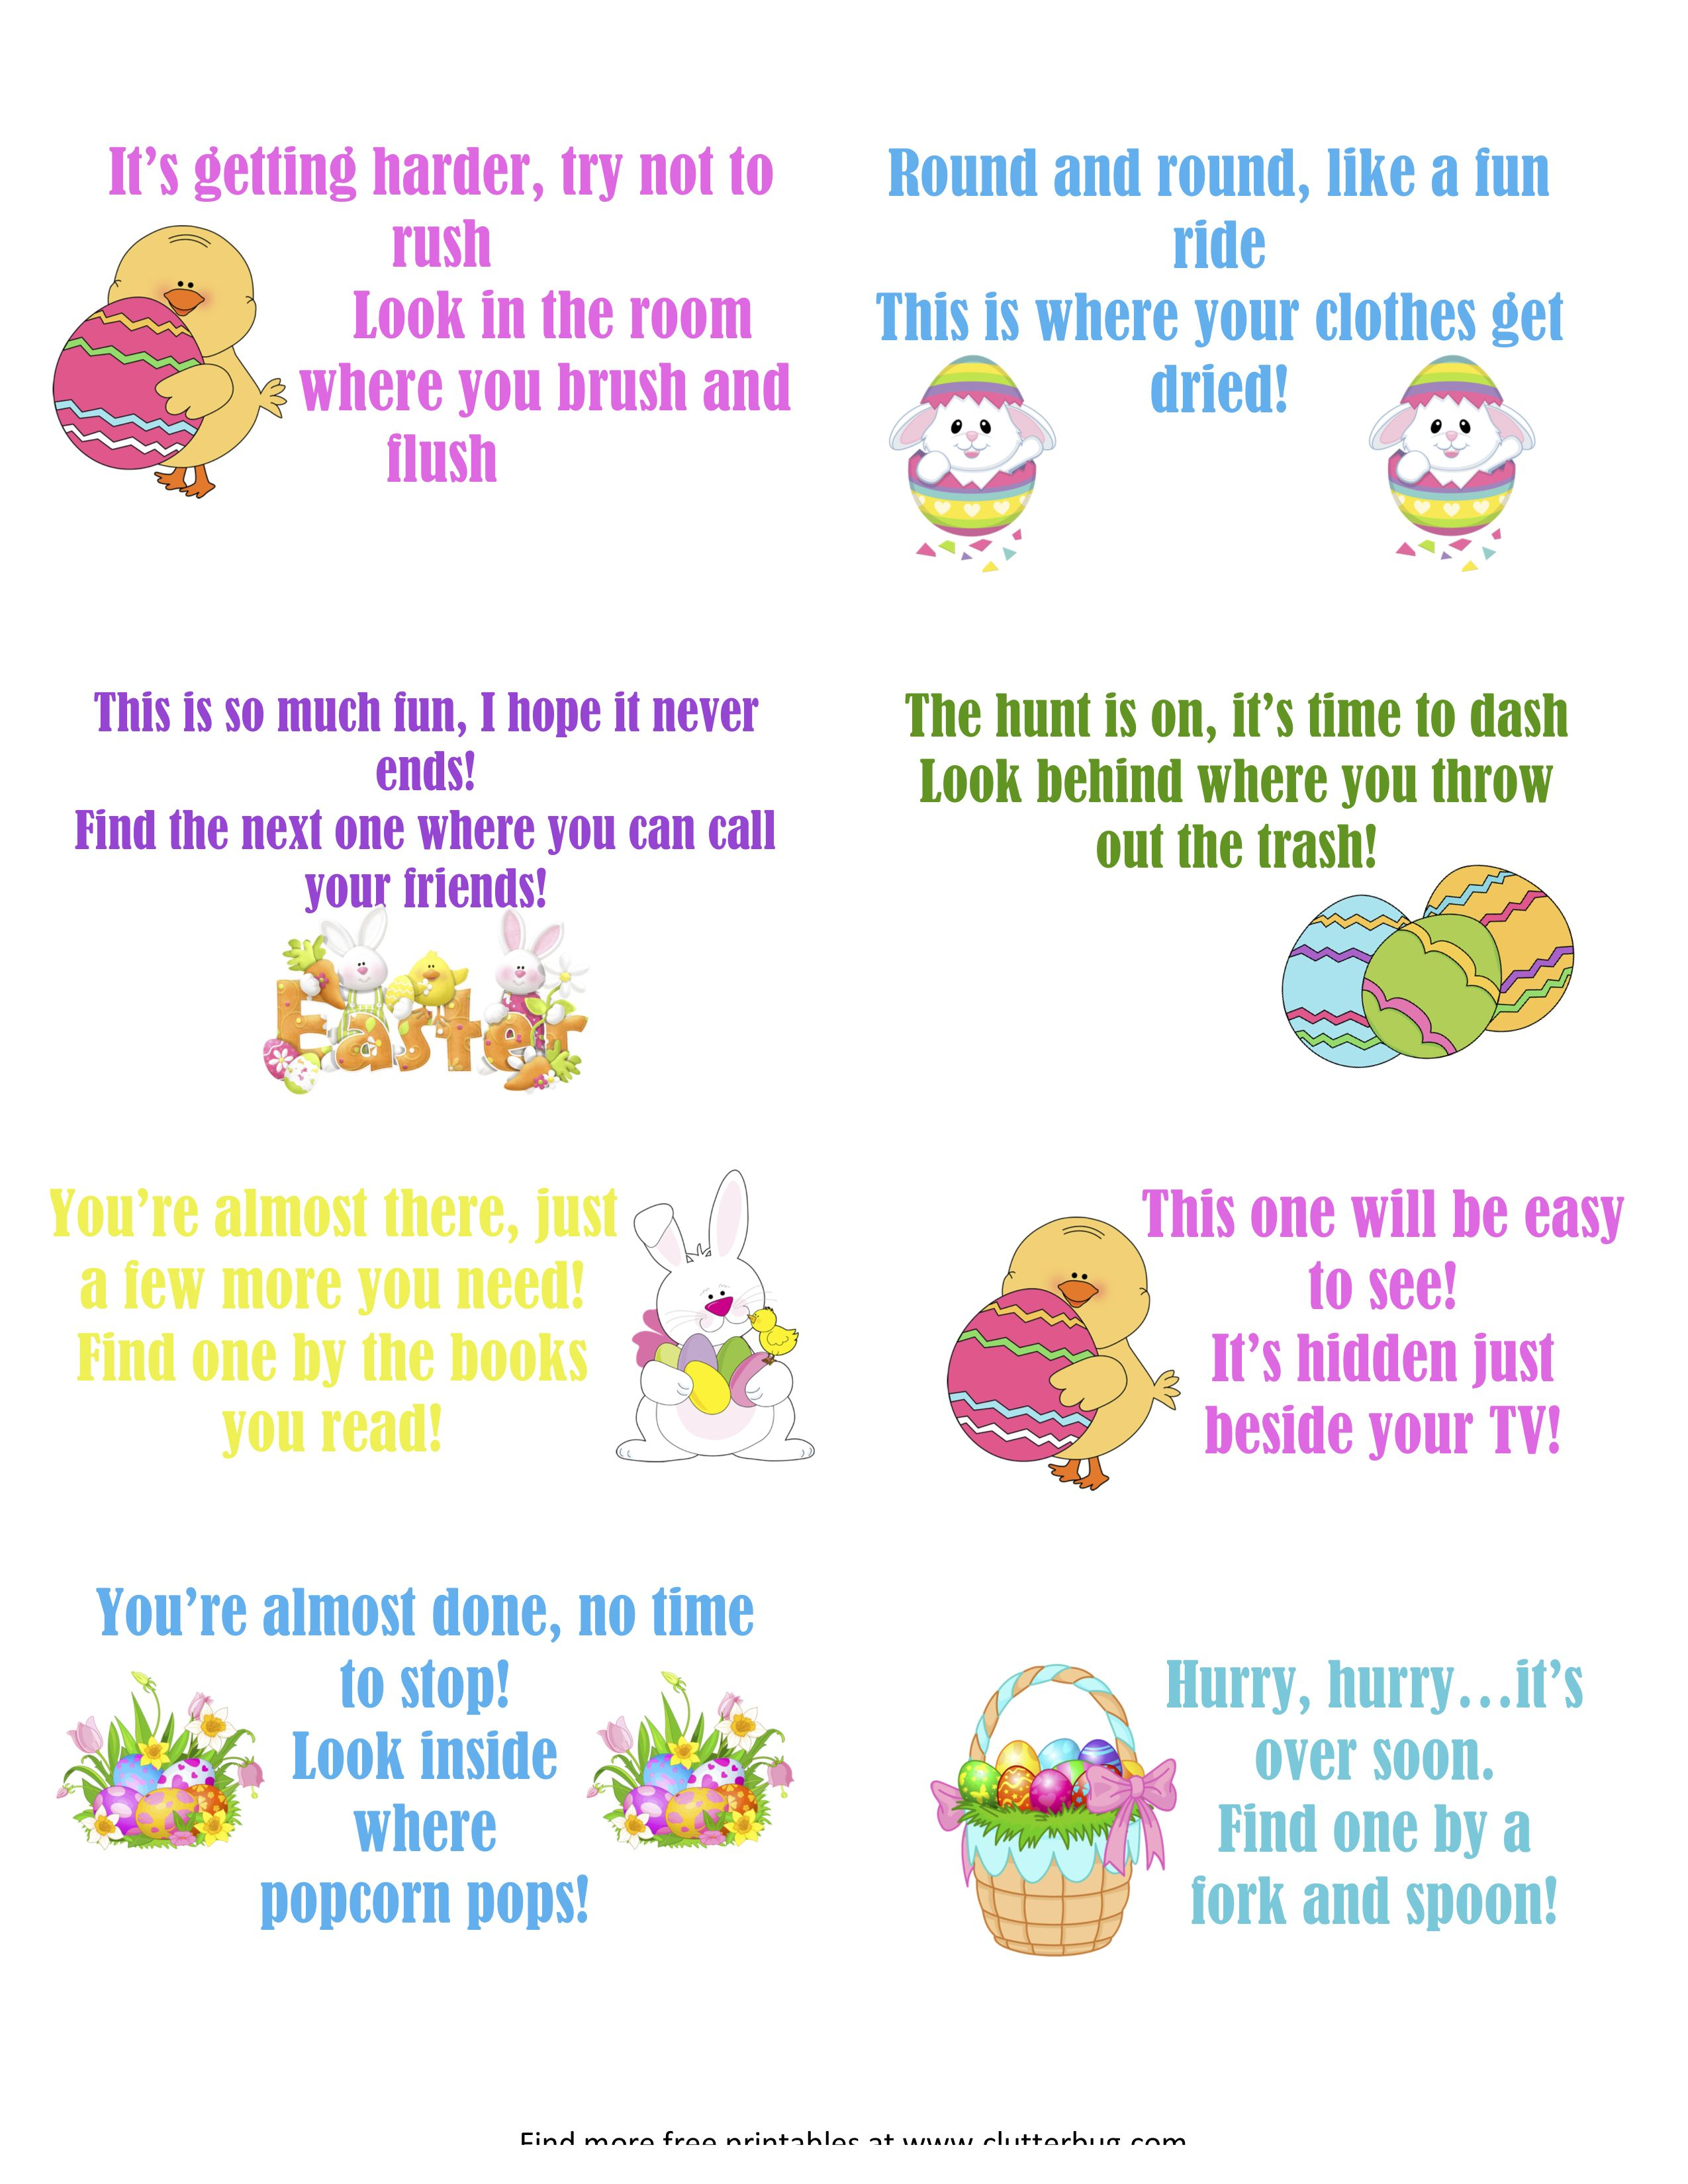 Easter Egg Stravagenza New Easter Egg Riddles Decorating